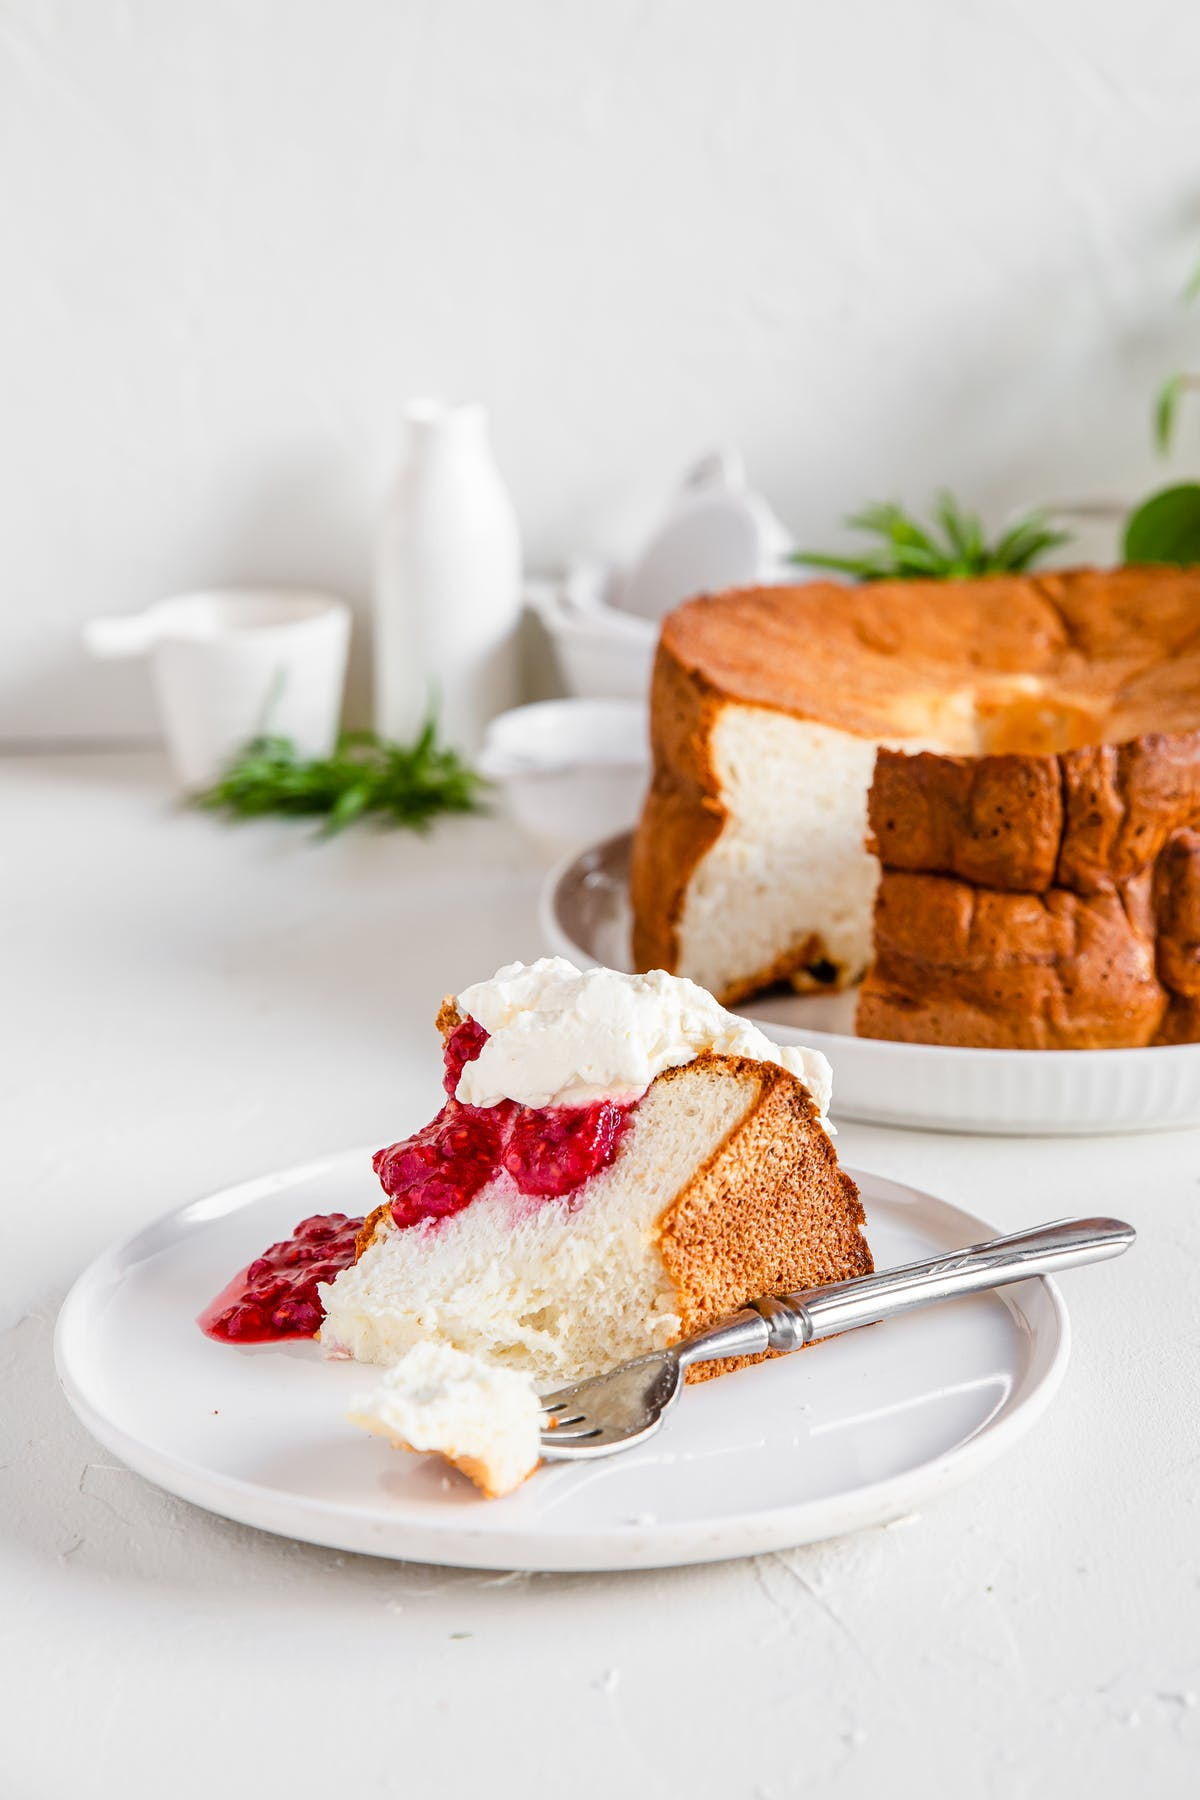 High-protein low-carb angel food cake